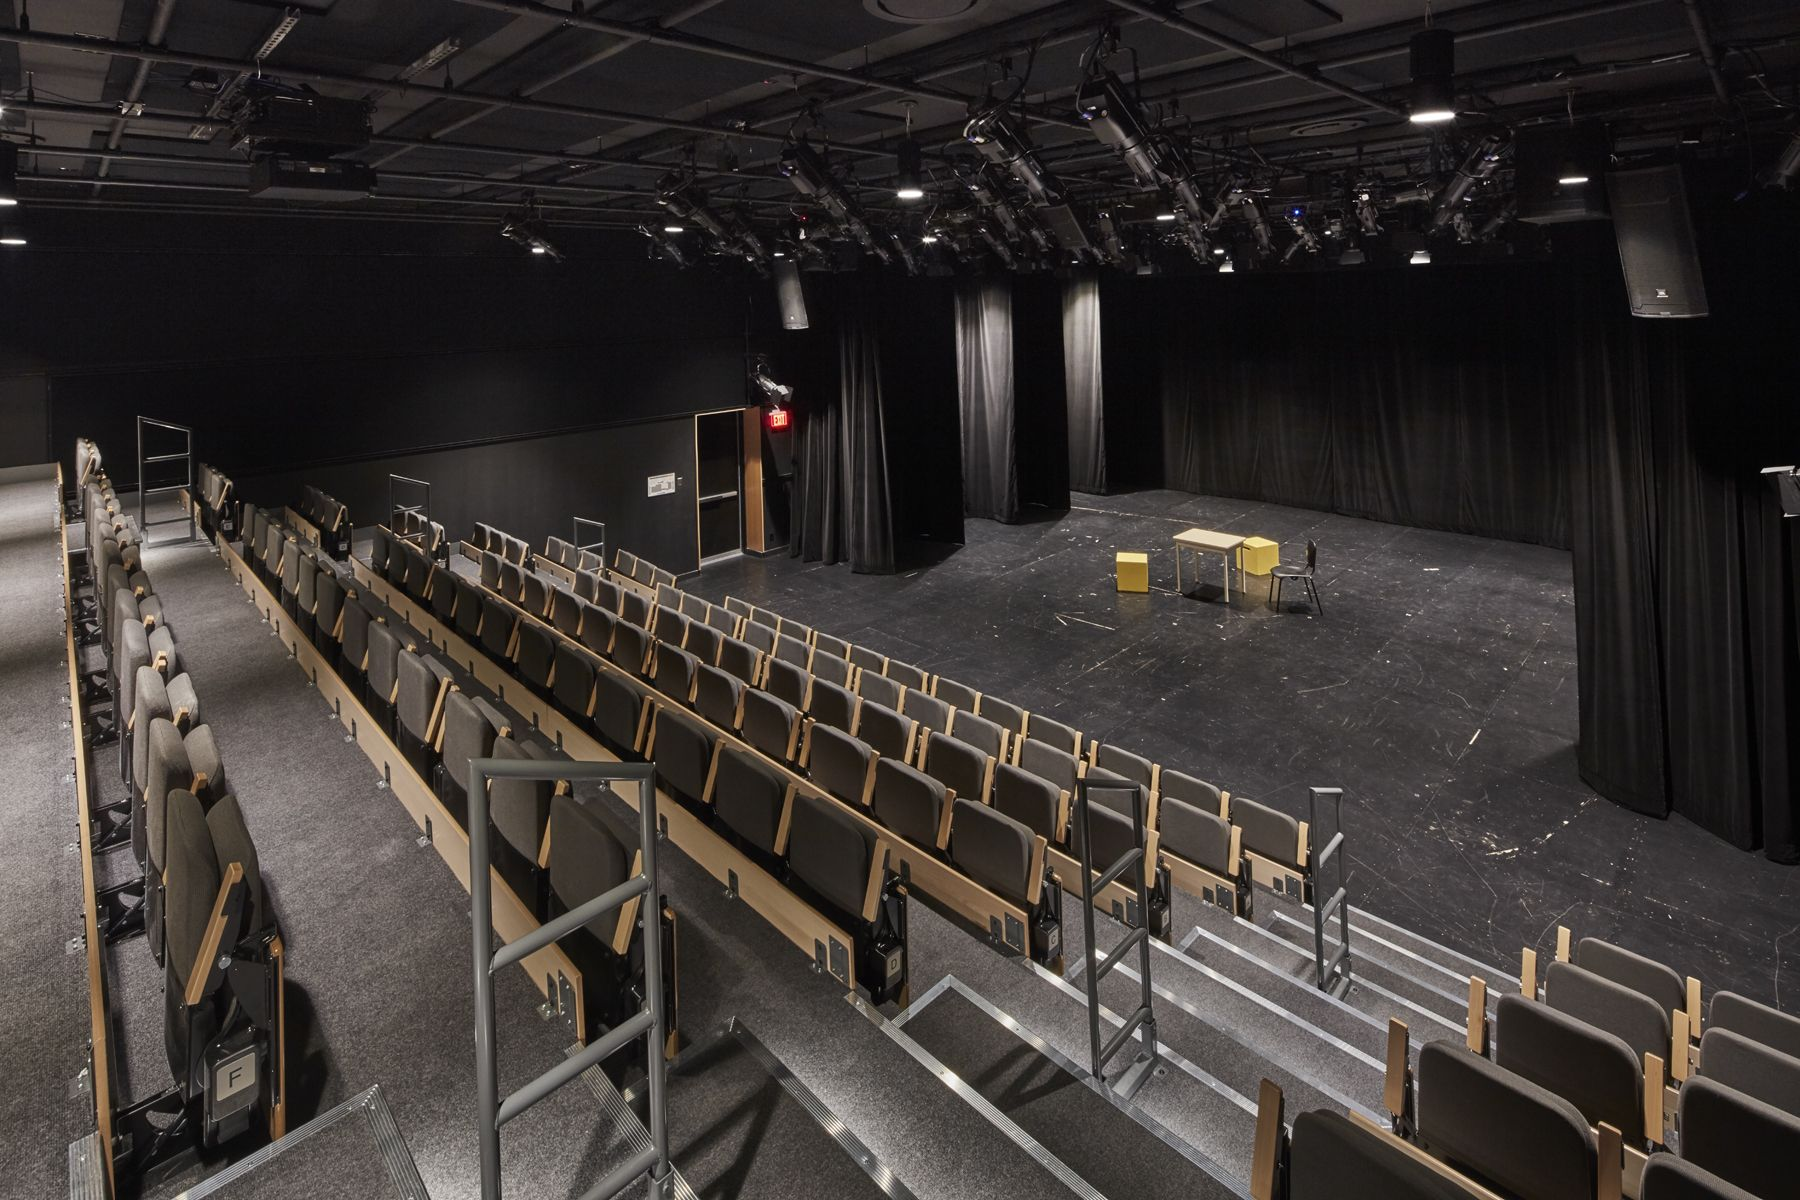 Our performing arts theatre, featuring state-of-the-art sound and lighting equipment and retractable seating, encourages students to give their creativity free rein. This versatile space hosts drama classes, school plays, guest speakers, group presentations and more.